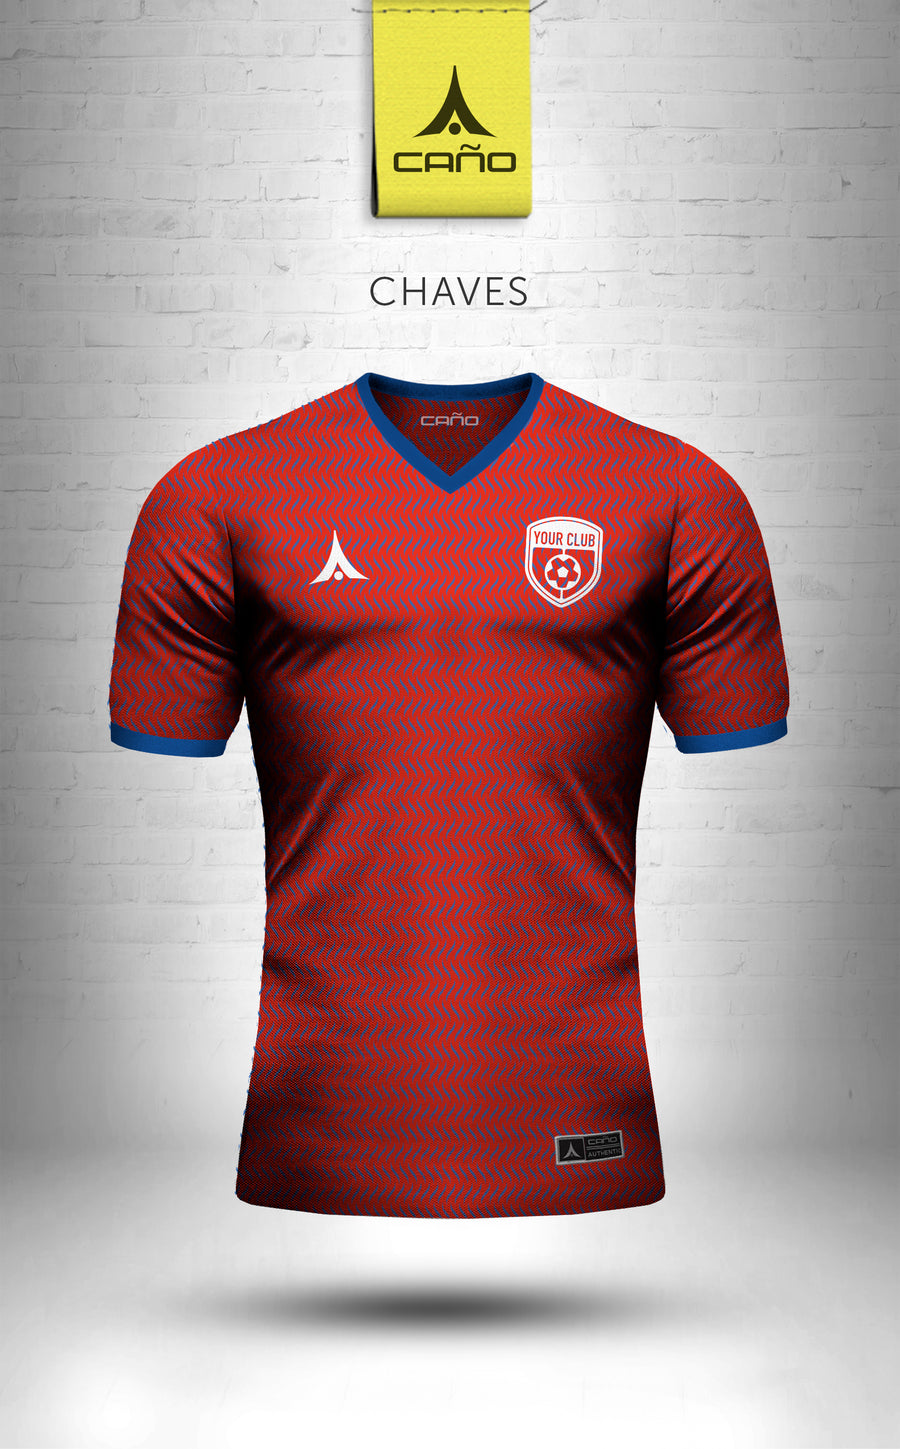 Chaves in red/blue/white